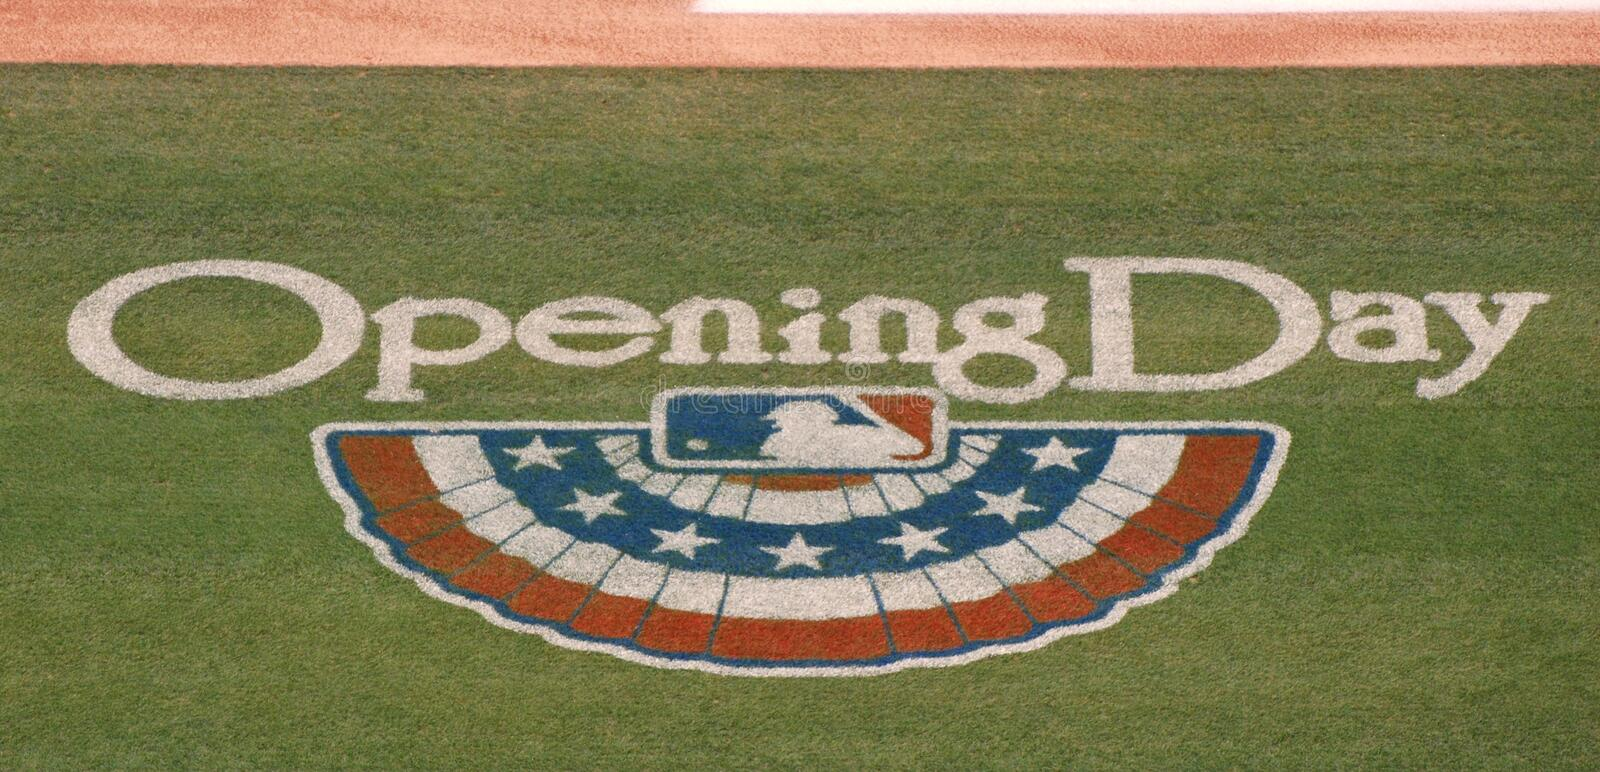 Major League Baseball's Opening Day logo. On the grass and ready for action royalty free stock images